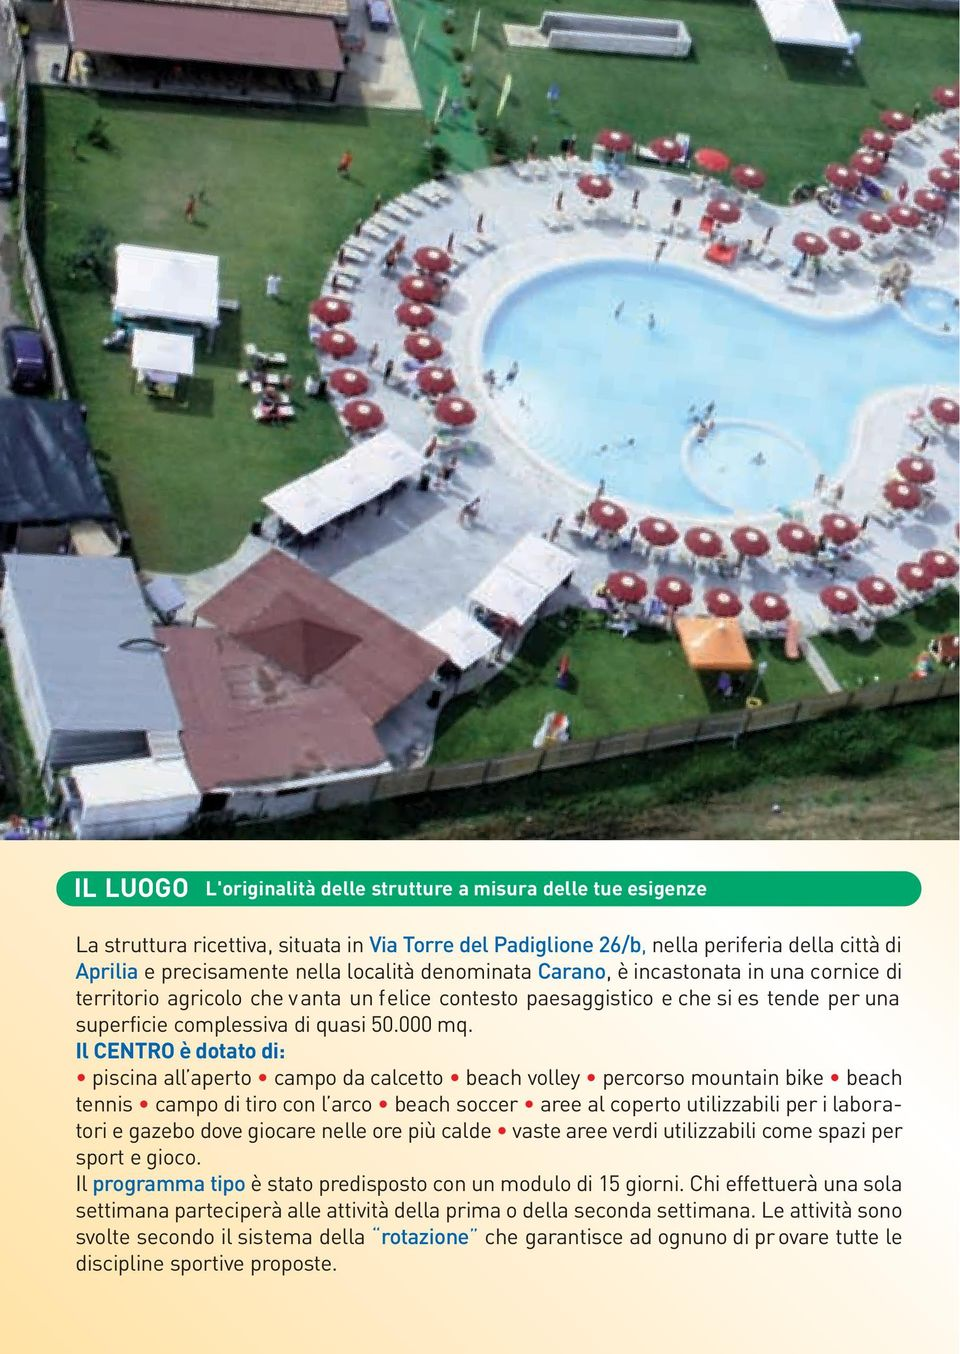 Il CENTRO è dotato di: piscina all aperto campo da calcetto beach volley percorso mountain bike beach tennis campo di tiro con l arco beach soccer aree al coperto utilizzabili per i laboratori e